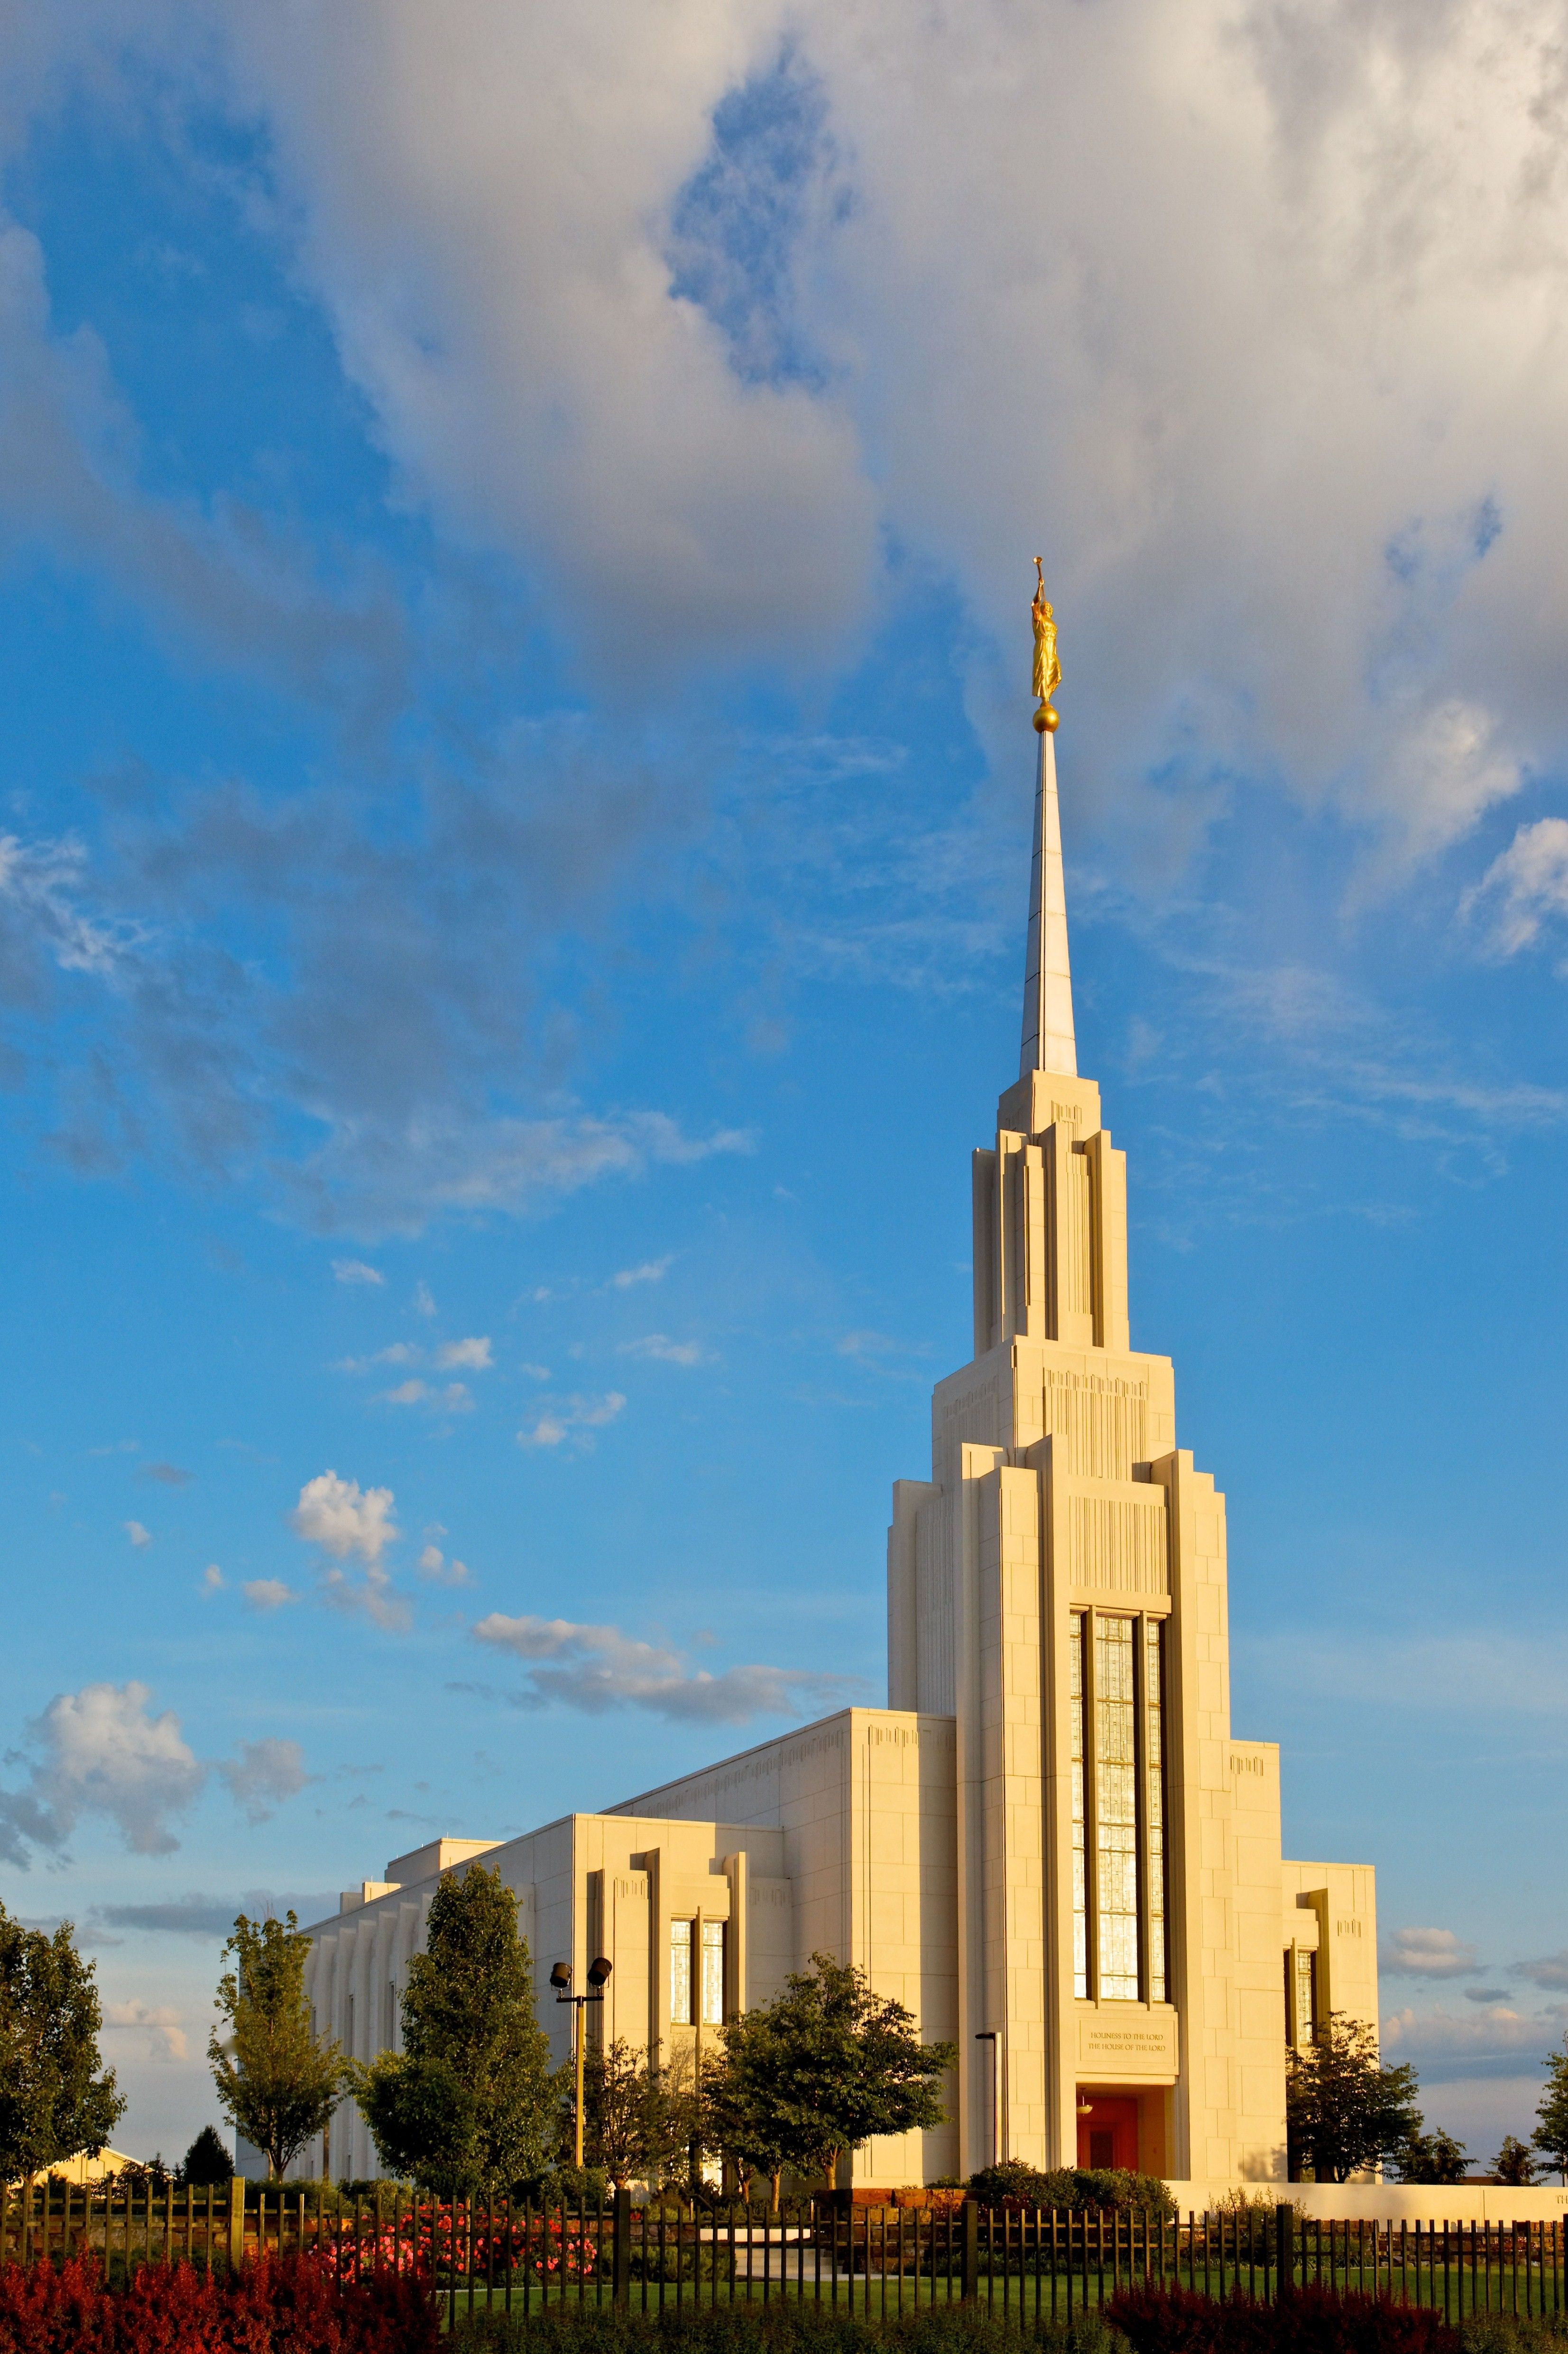 The Twin Falls Idaho Temple during daylight, including the entrance and scenery.